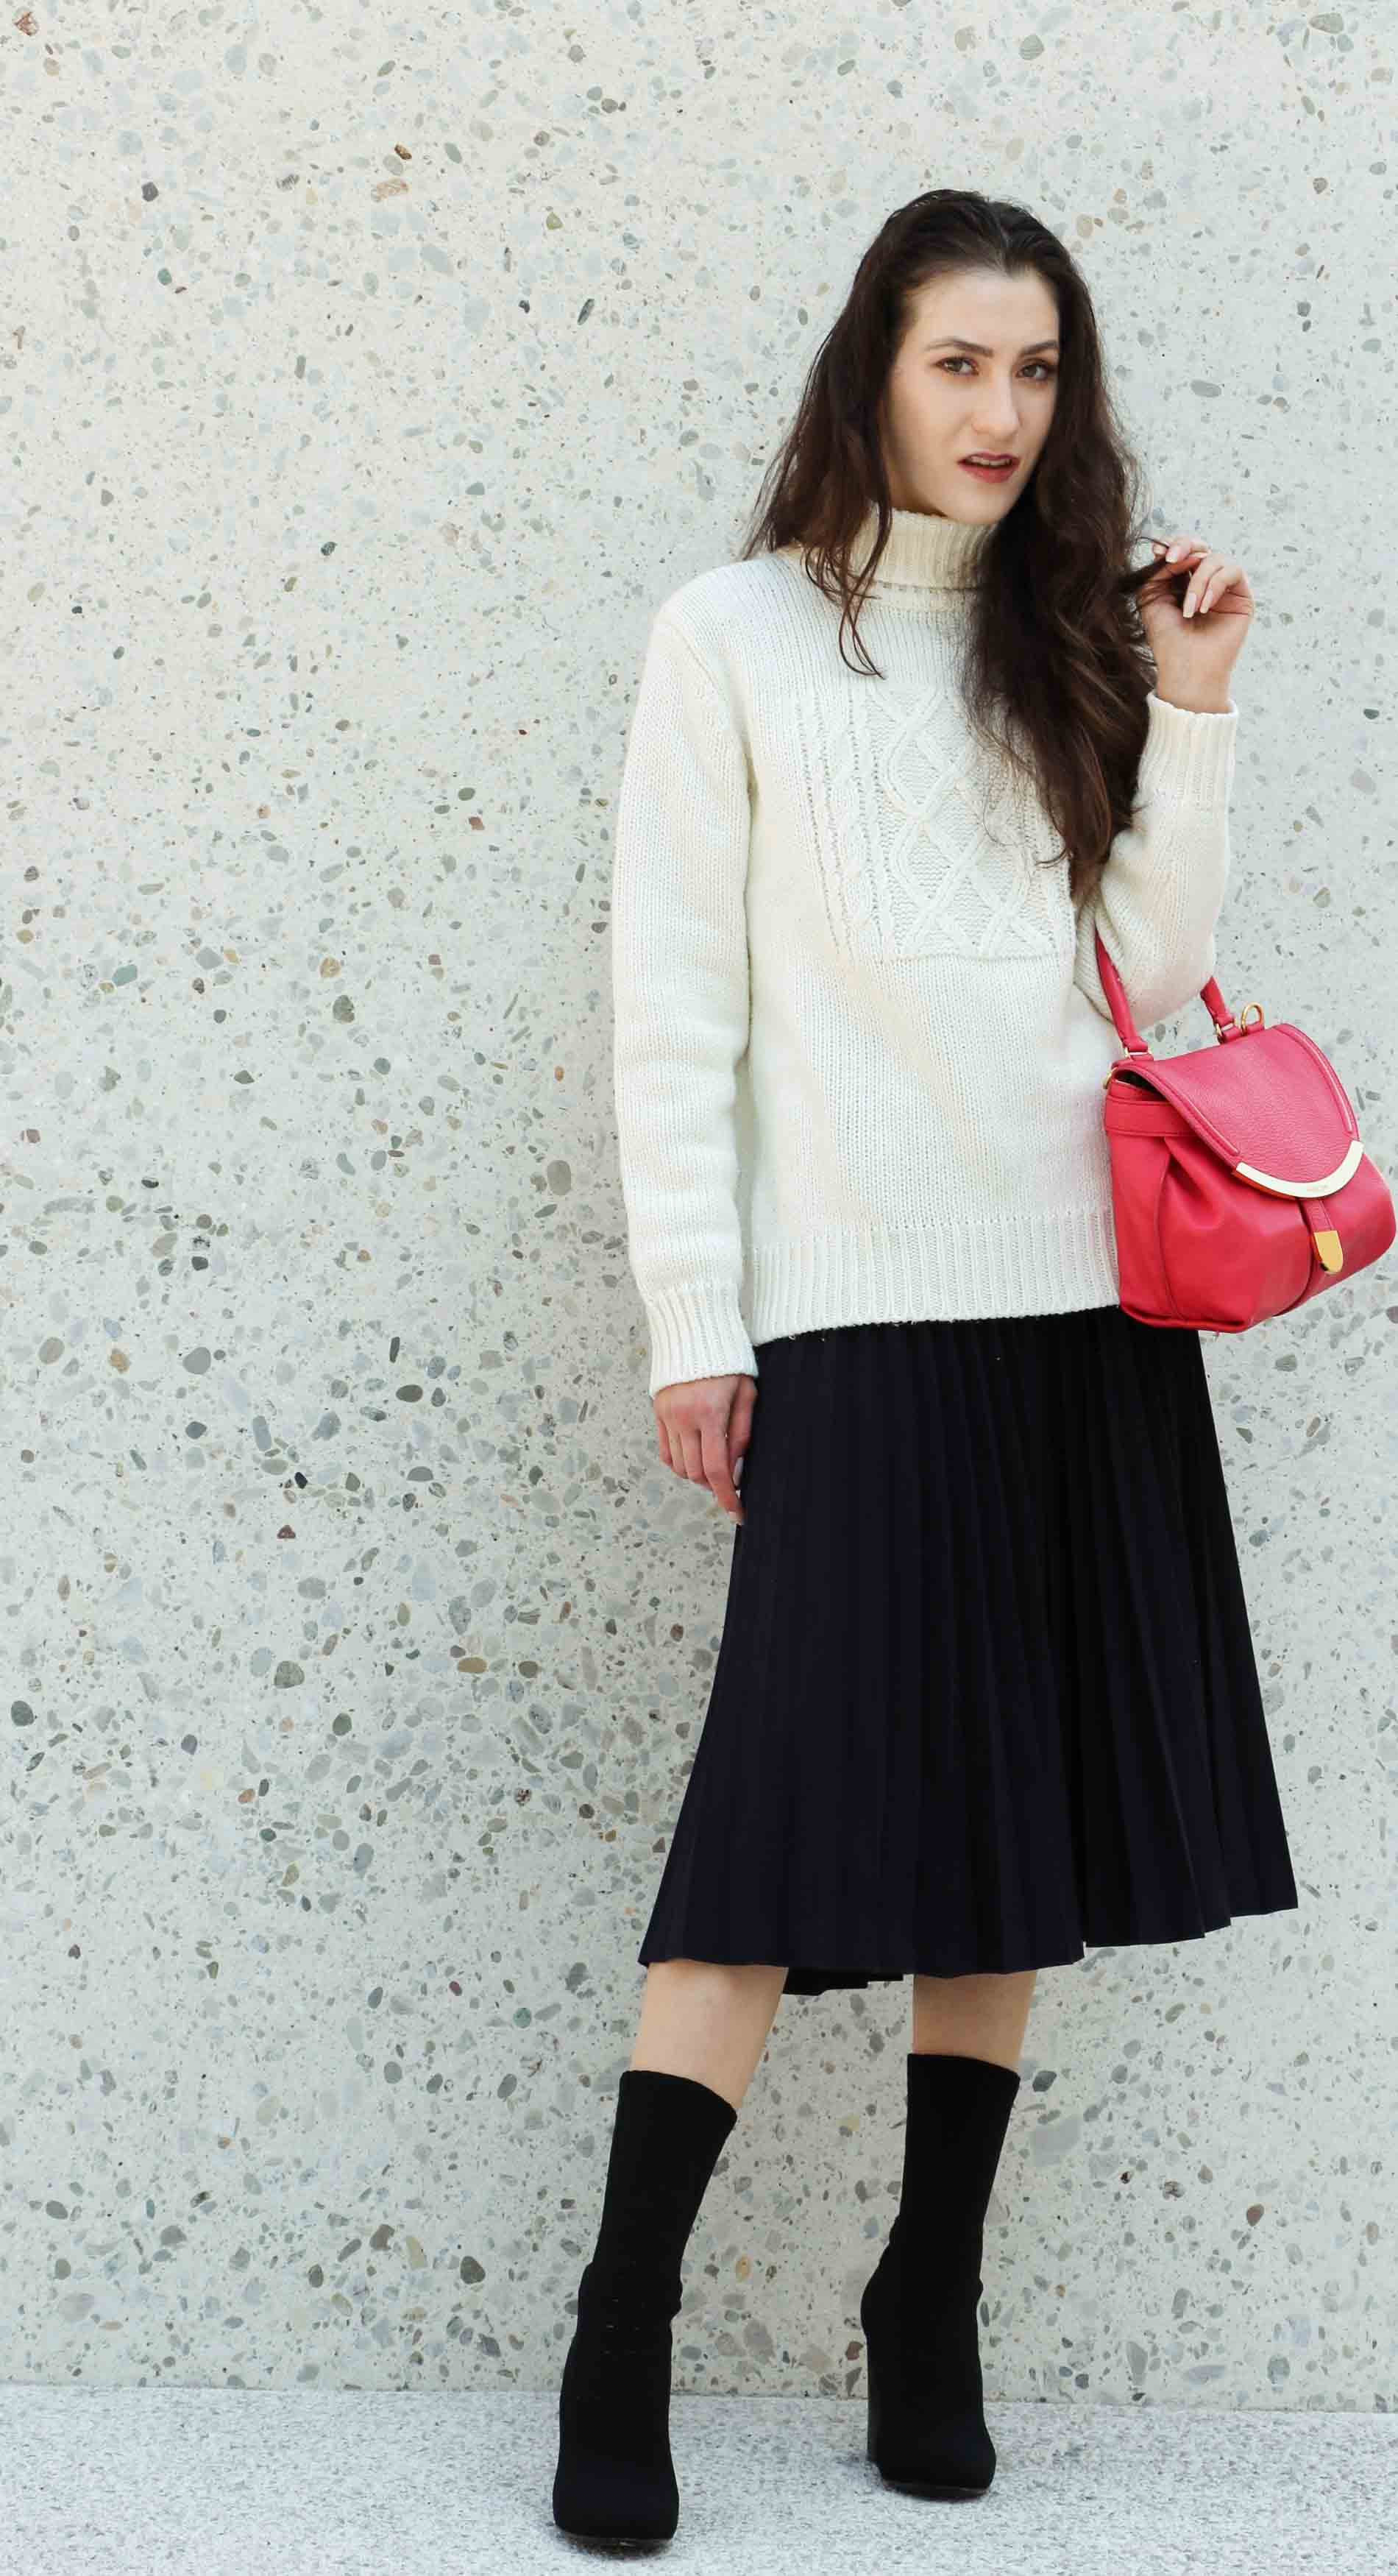 Fashion Blogger Veronika Lipar of Brunette from Wall Street wearing white oversize cable knit sweater, black pleated midi skirt, pink top handle bag from See by Chloe and black sock boots from Elena Iachi